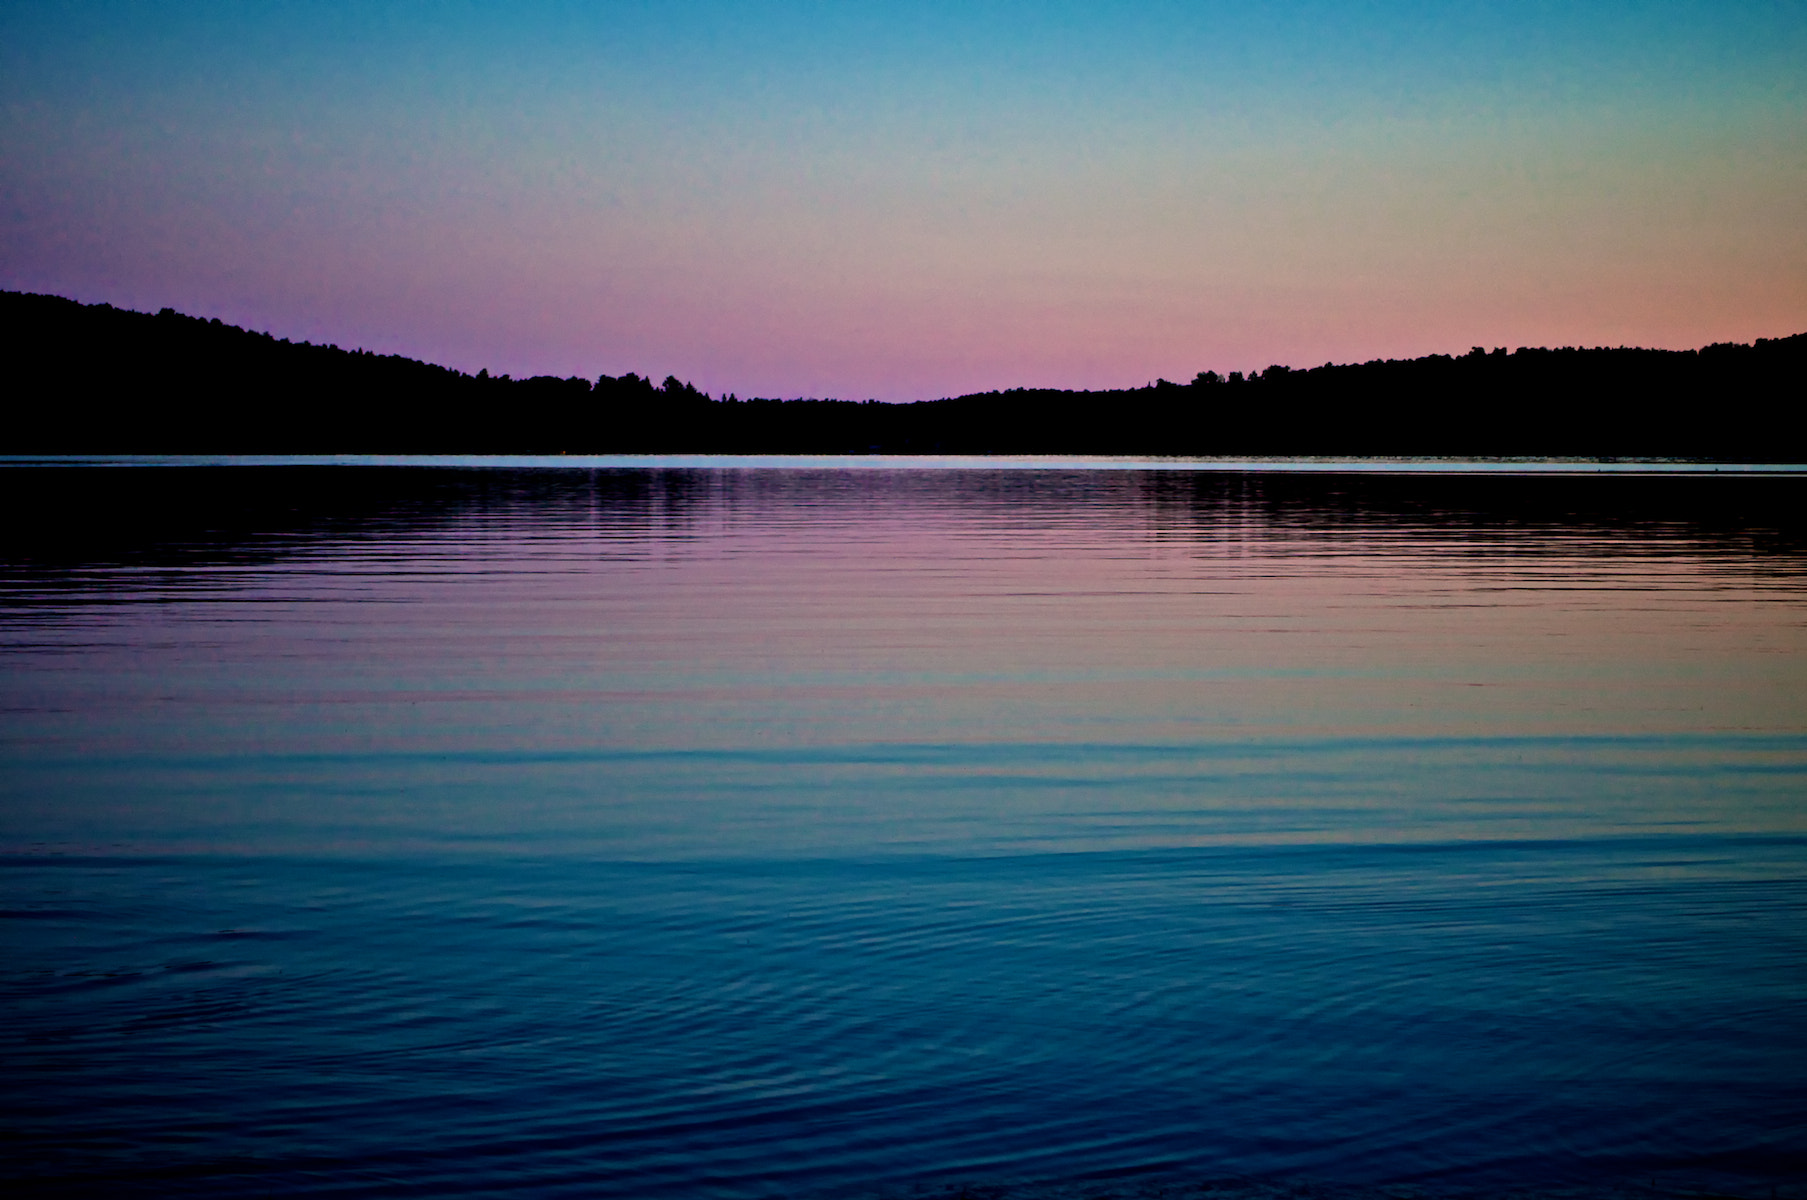 Photograph Sunset at Leslie lake by Mocking Jay on 500px